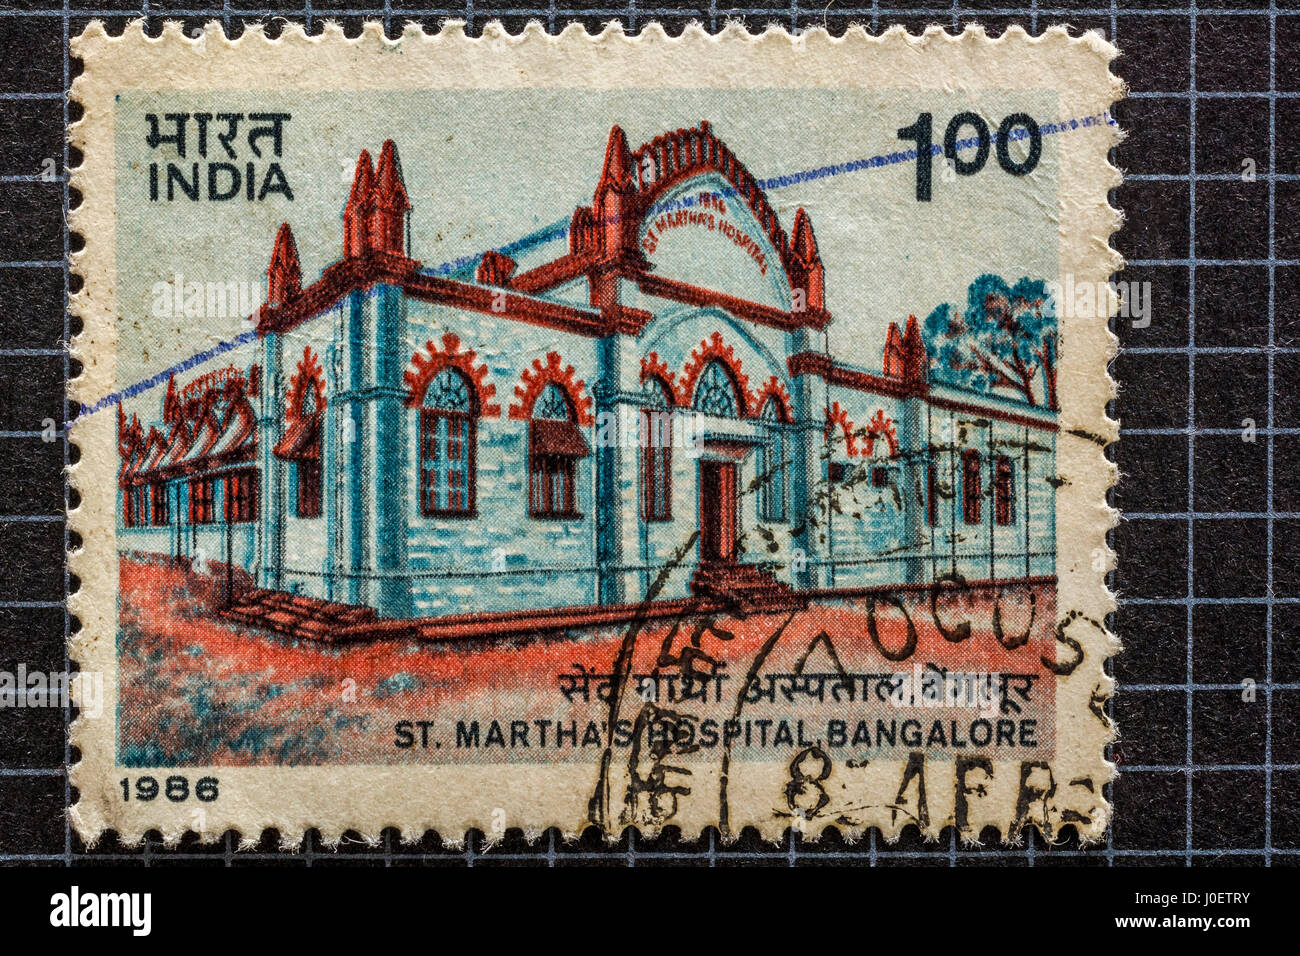 St marthas hospital, bangalore, postage stamps, india, asia - Stock Image